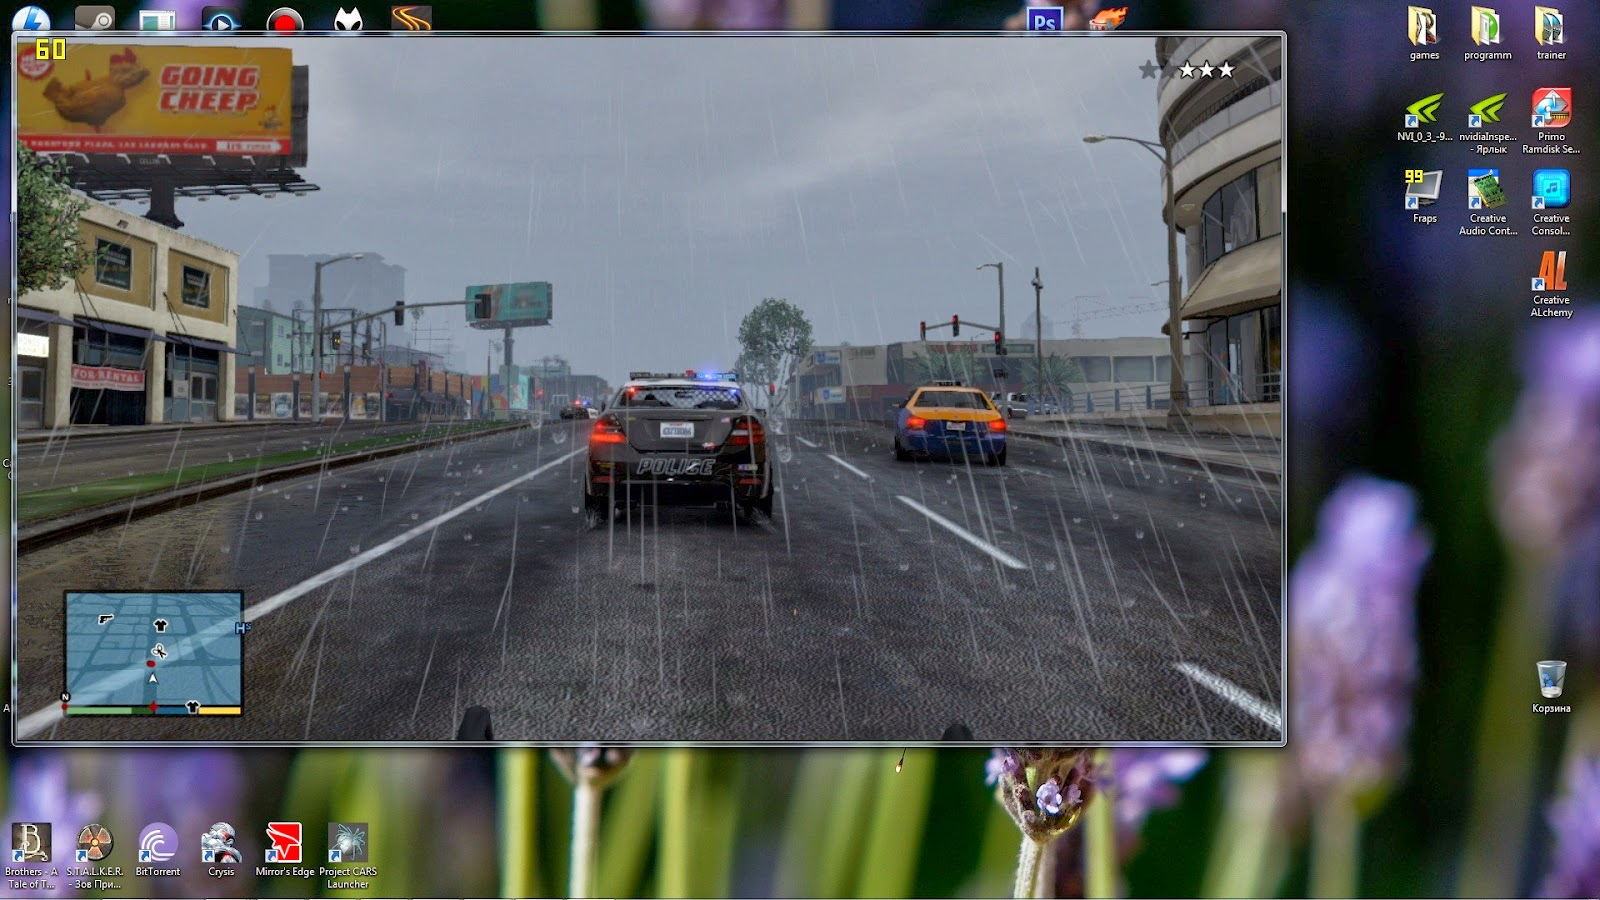 gta 5 demo download pc kostenlos